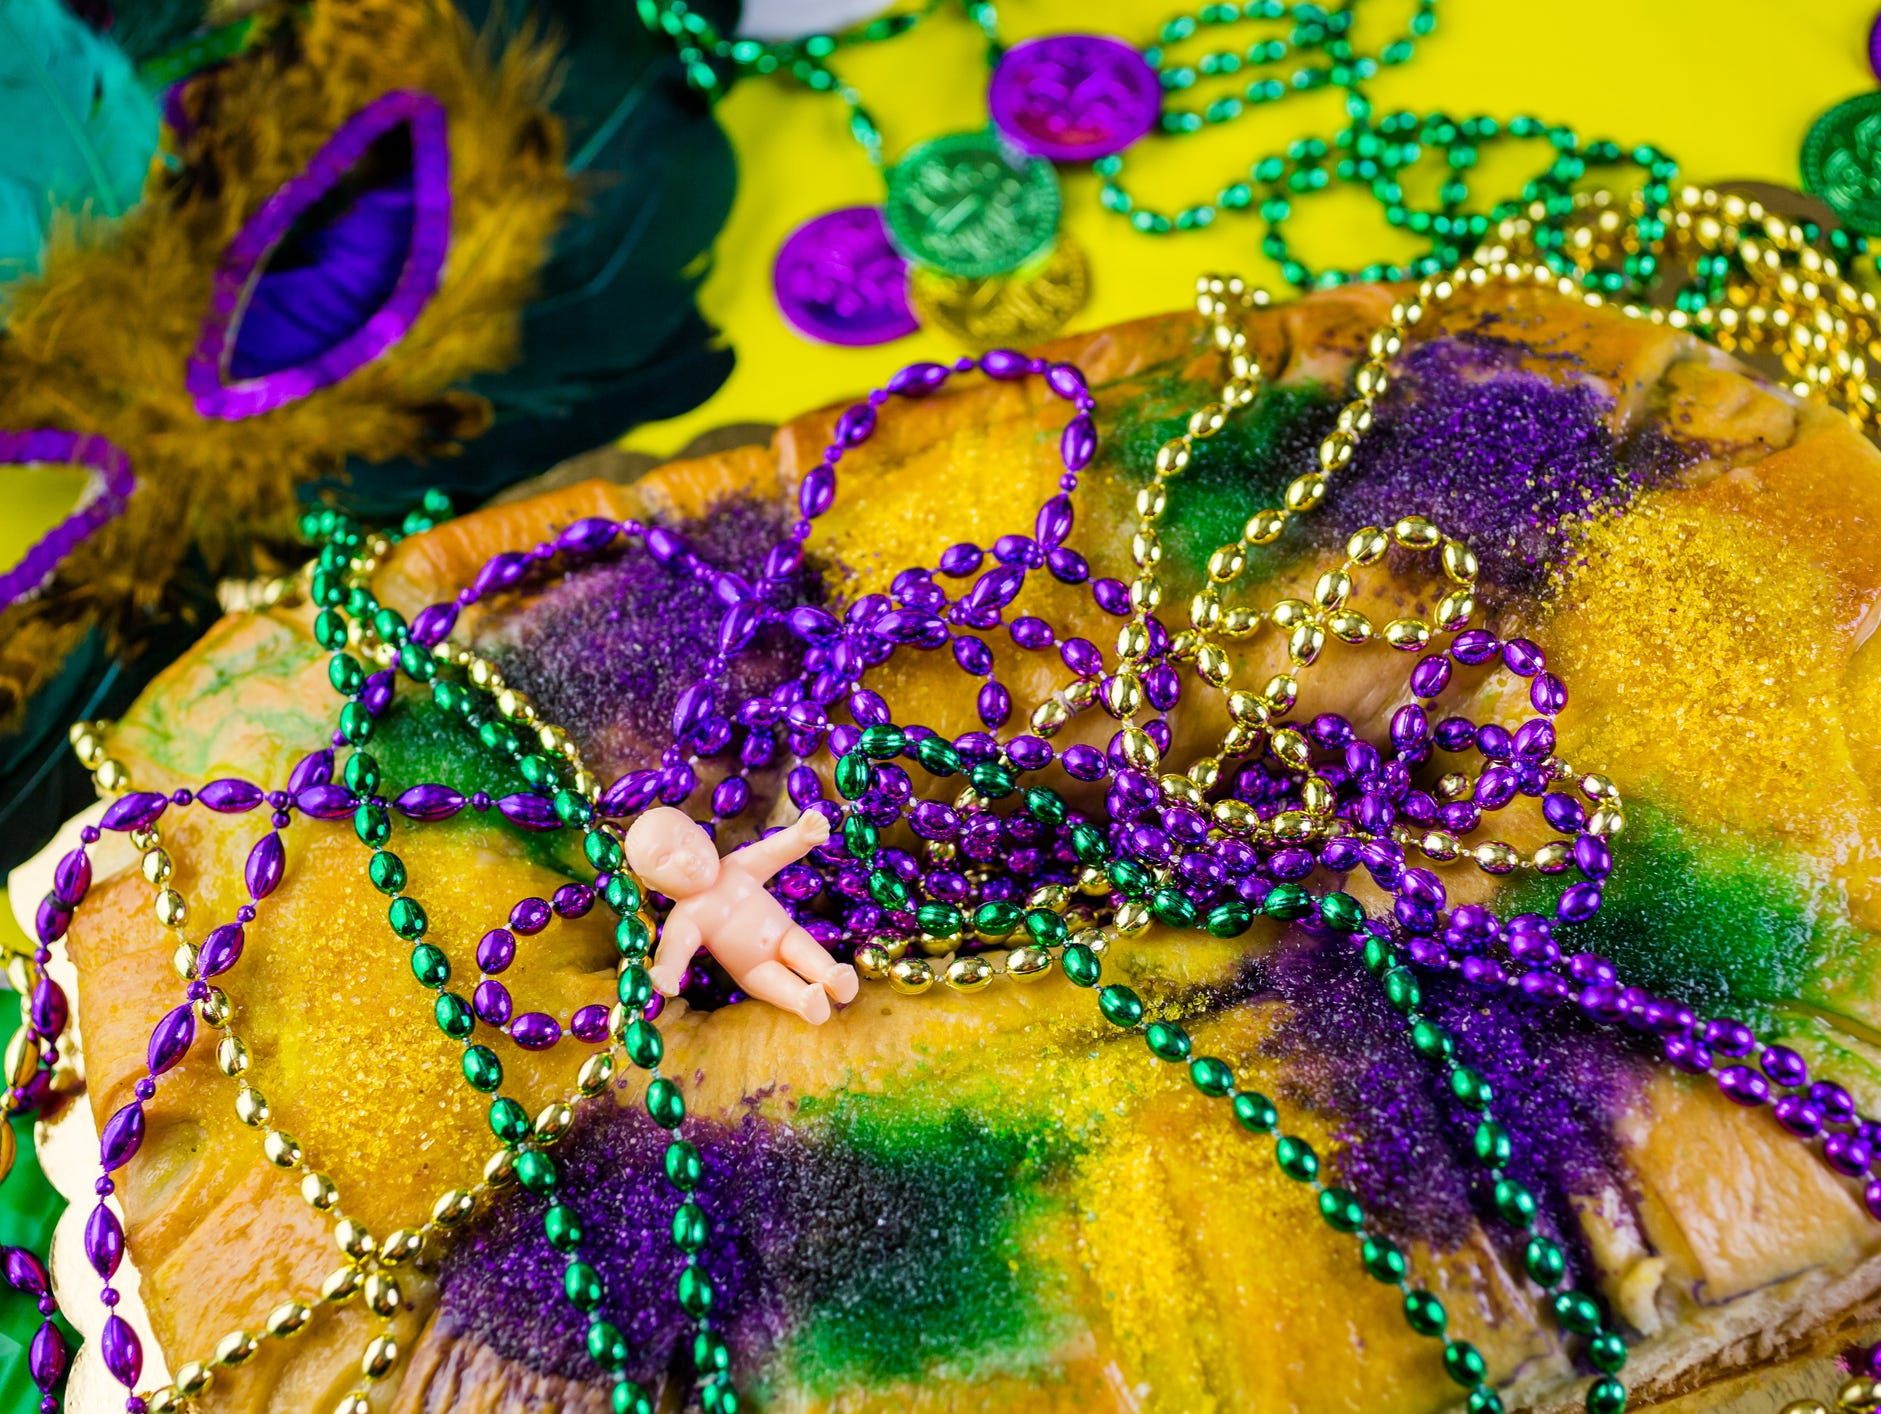 One Insider will win a king cake each week. Enter now!